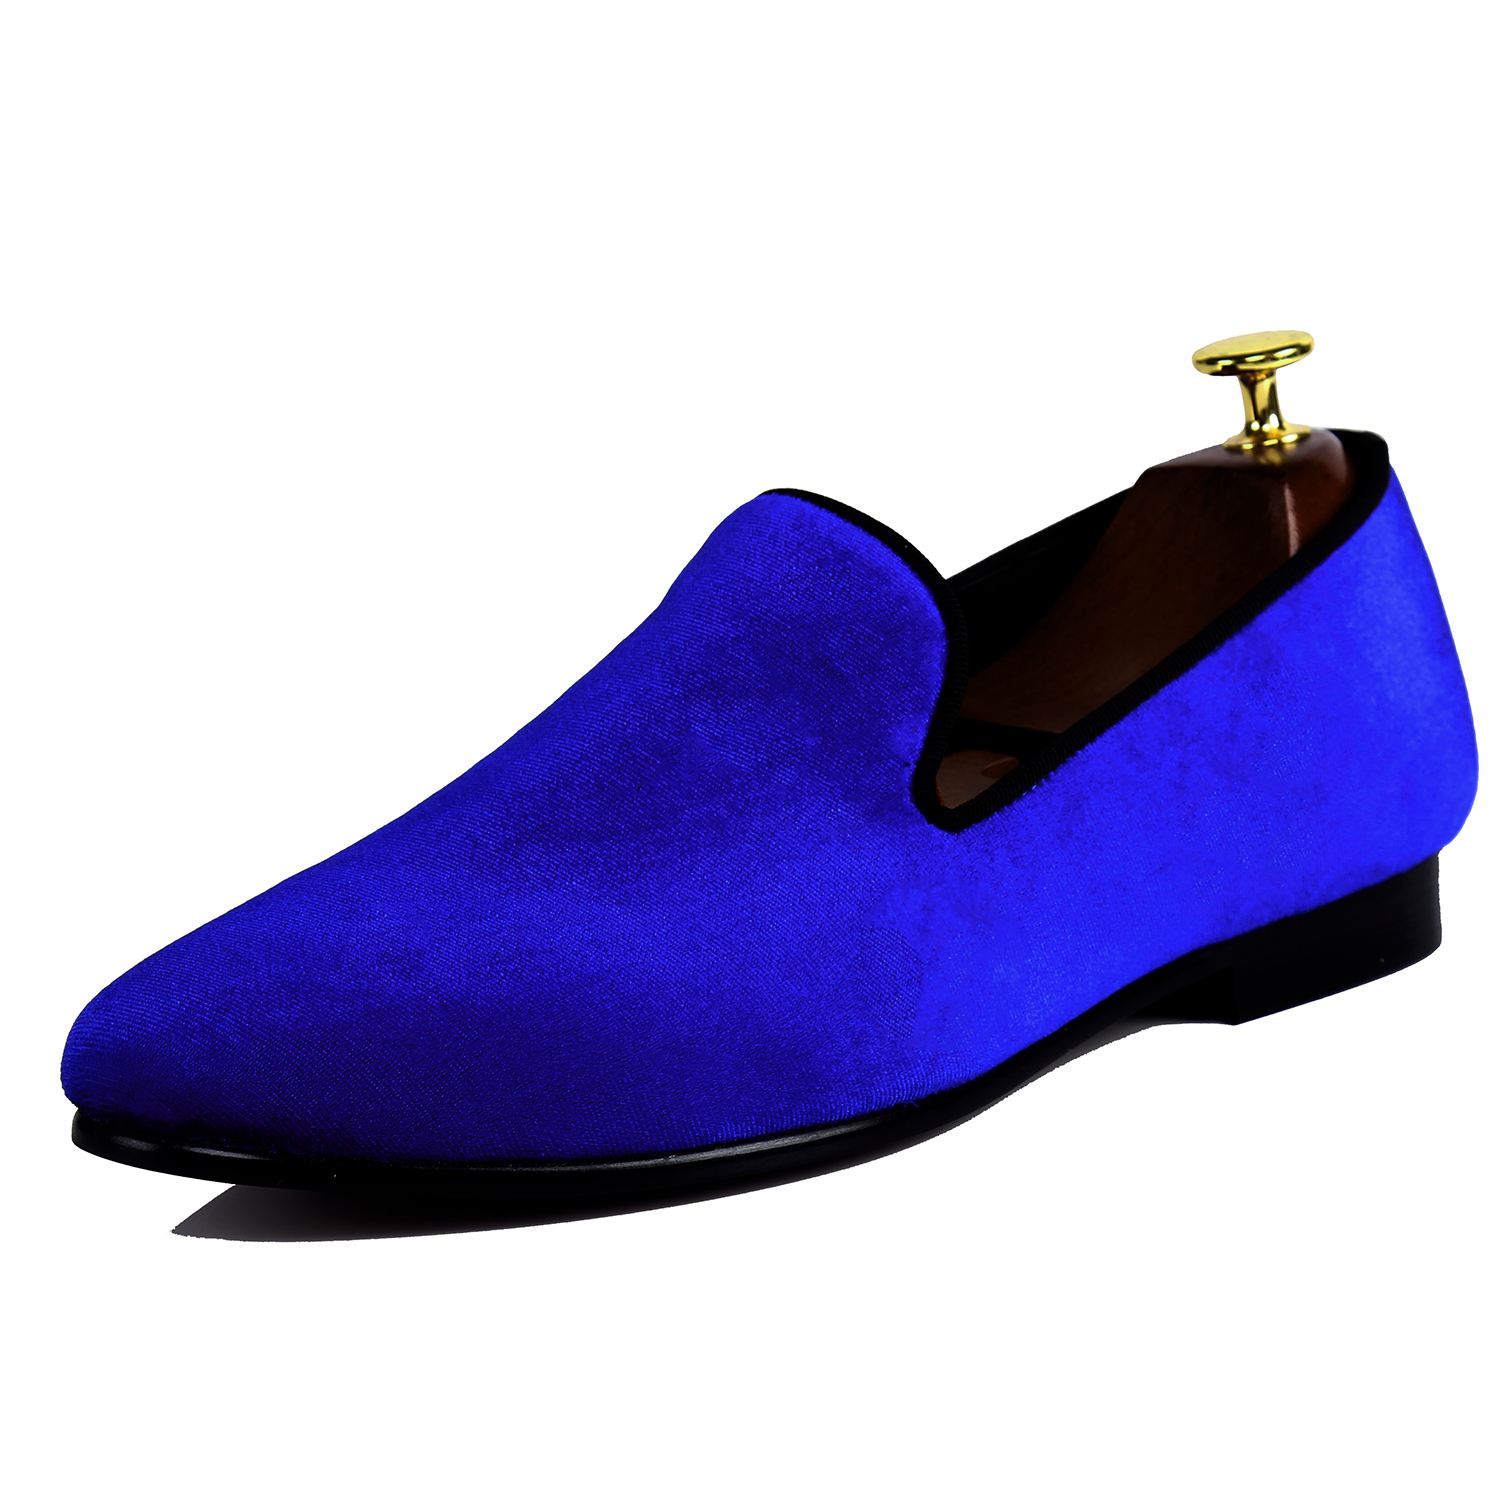 Harpelunde Mens Shoes Dress Blue Velvet Loafers Male Wedding Shoes Footwear nike nike ni464emjft43 page 1